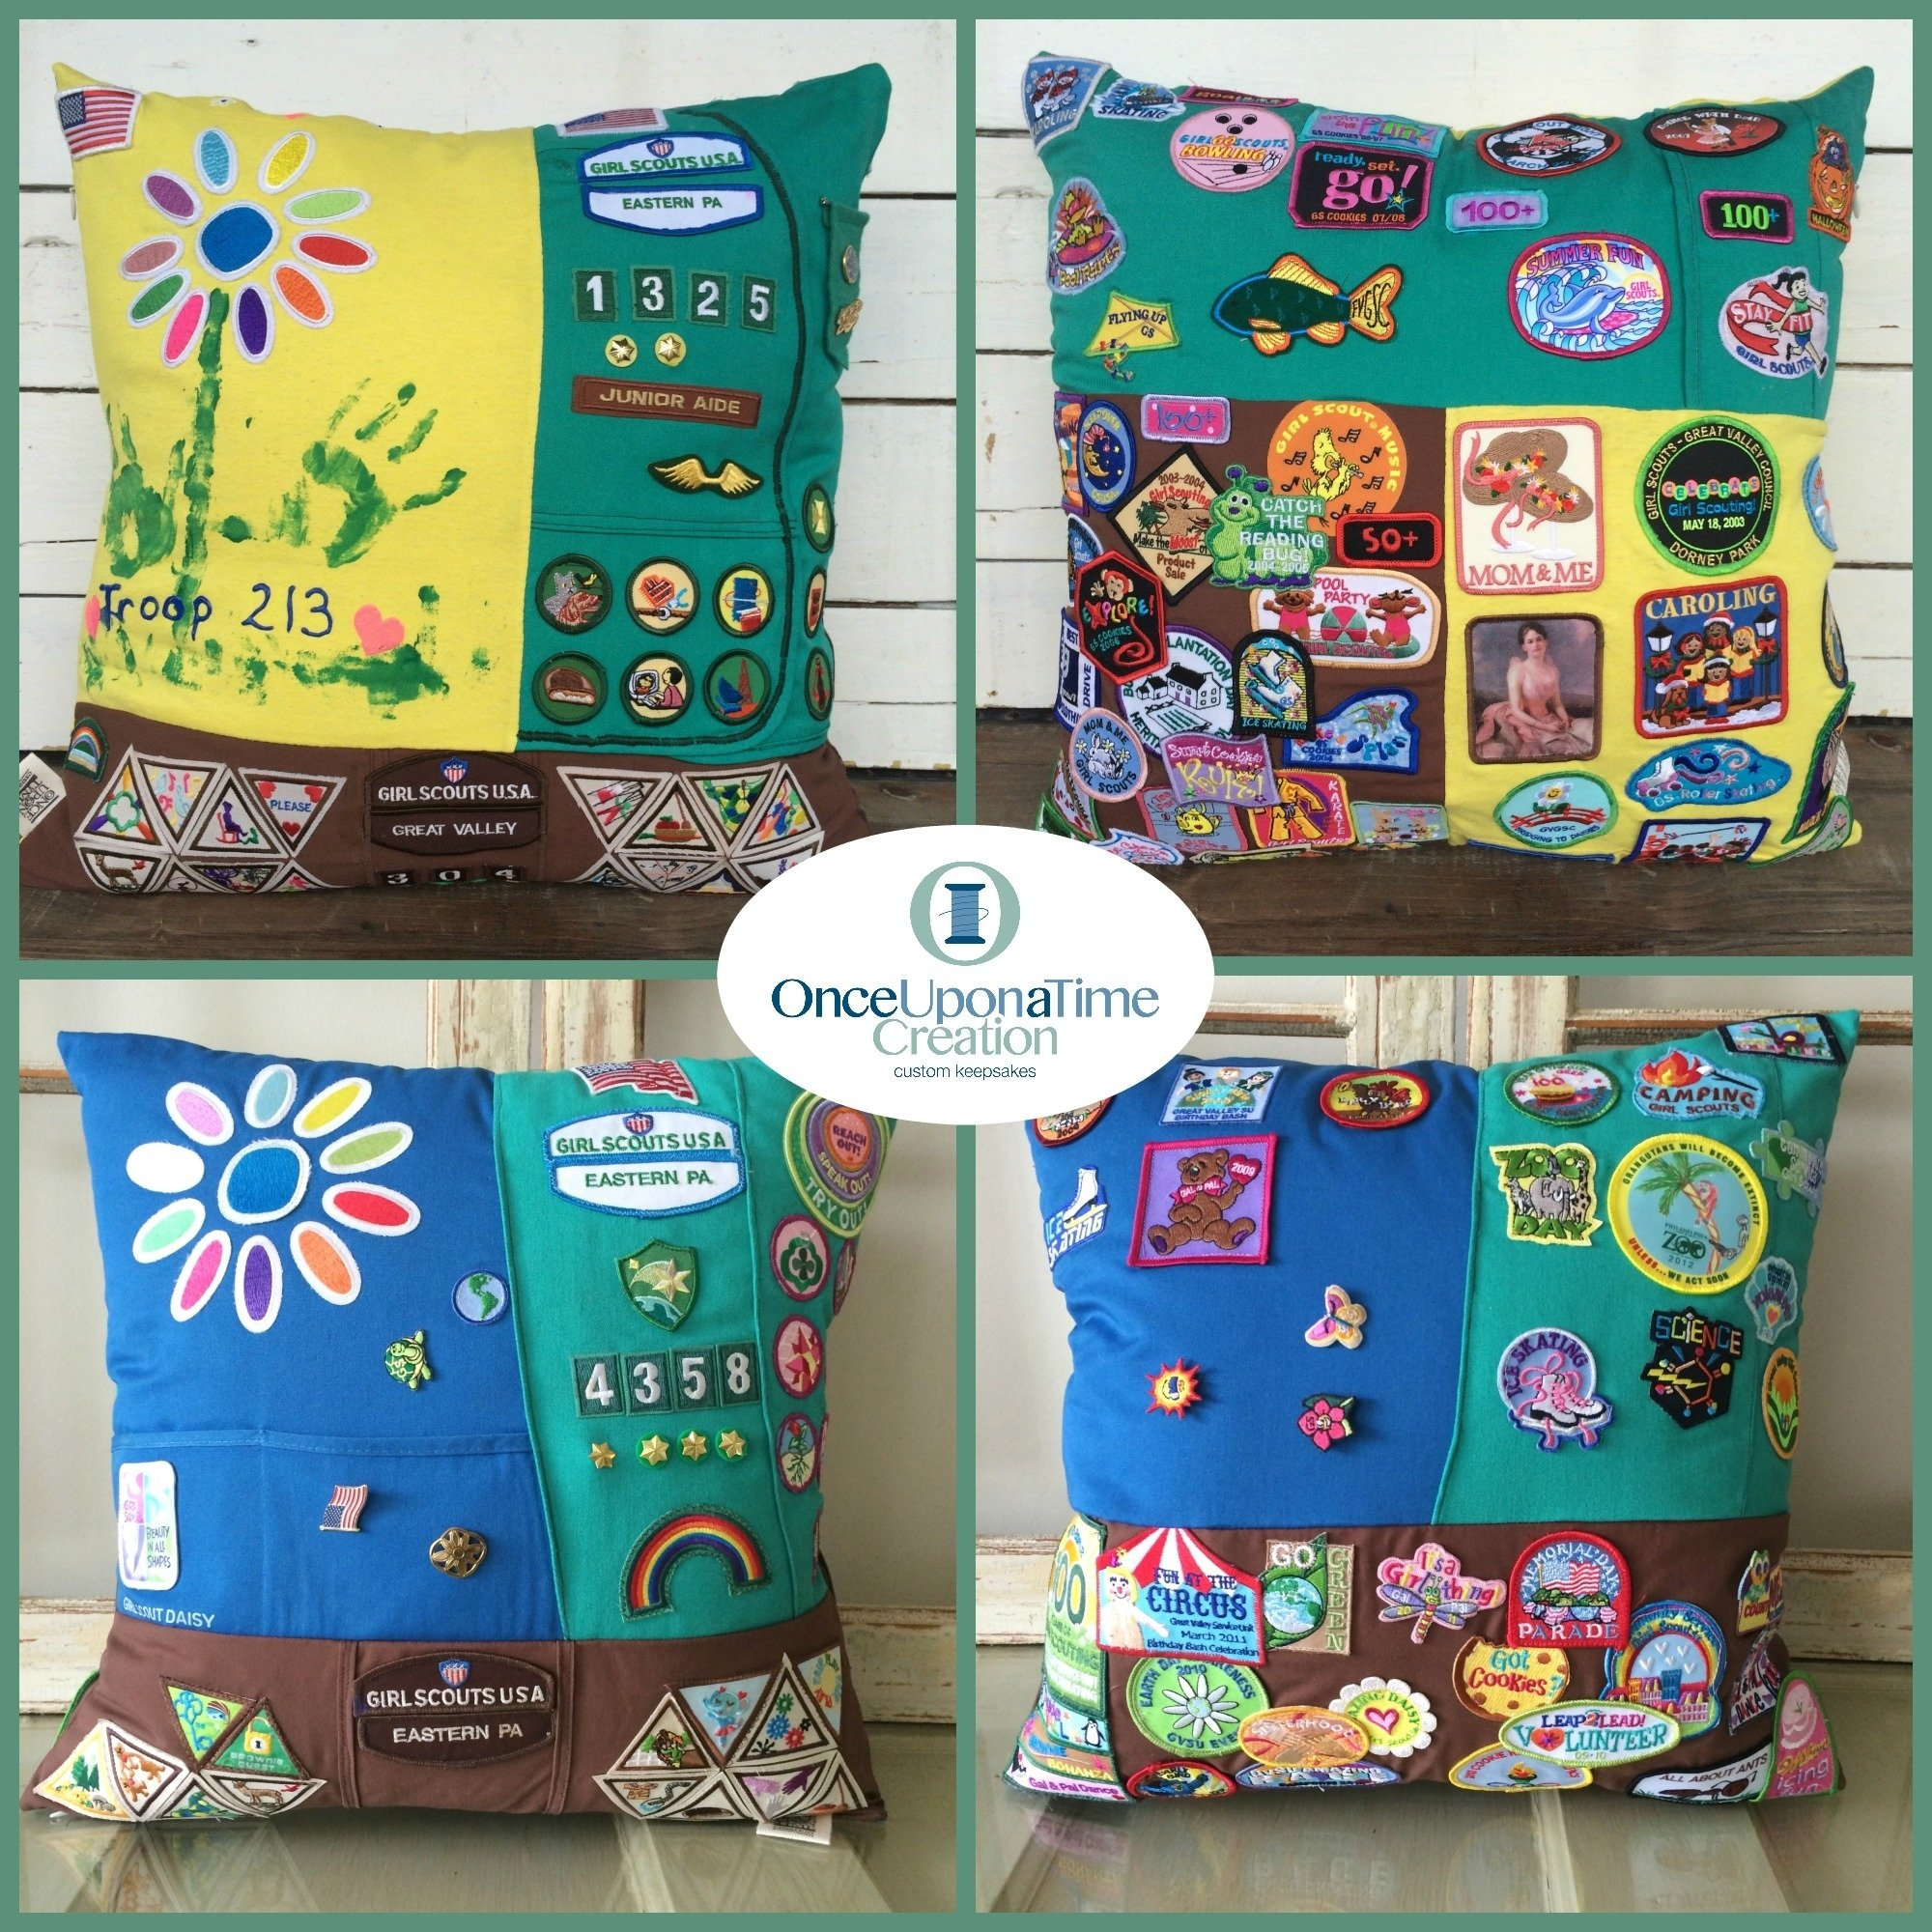 girl scout archives - once upon a time creation